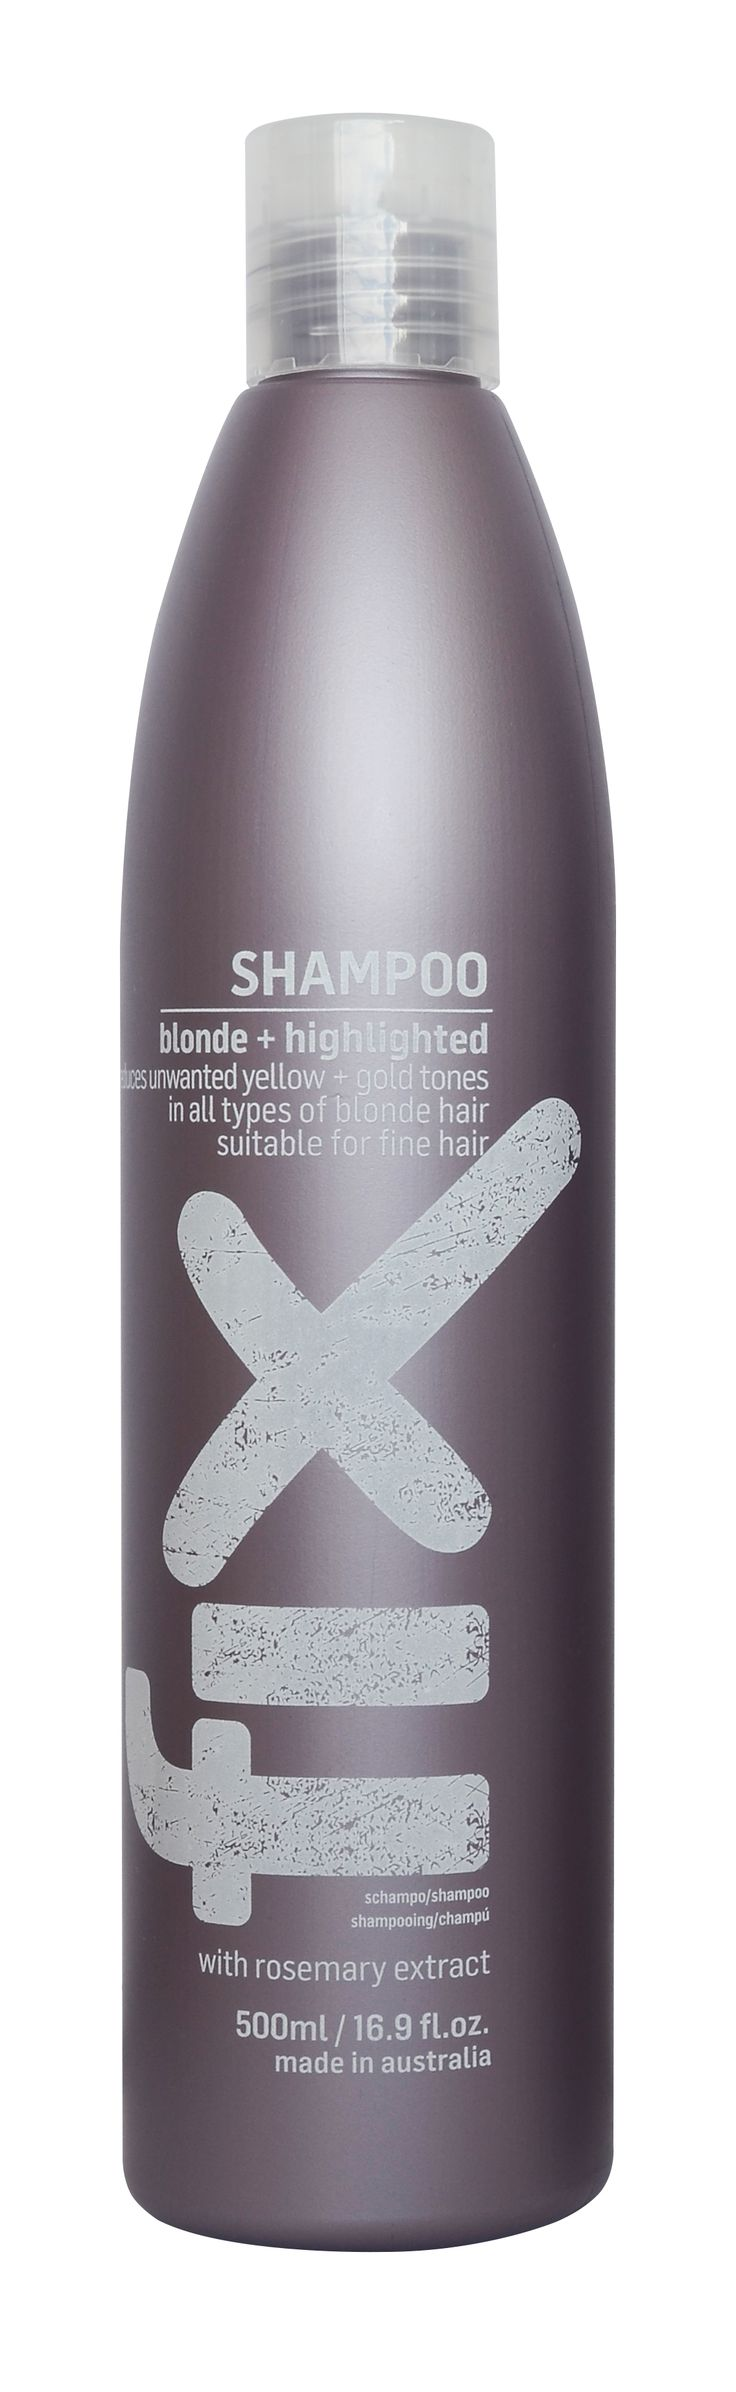 hairjamm, fix, blonde, highlighted, hair, haircare, rosemary extract, reduces yellow gold tones, australian made, JuuceAustralia